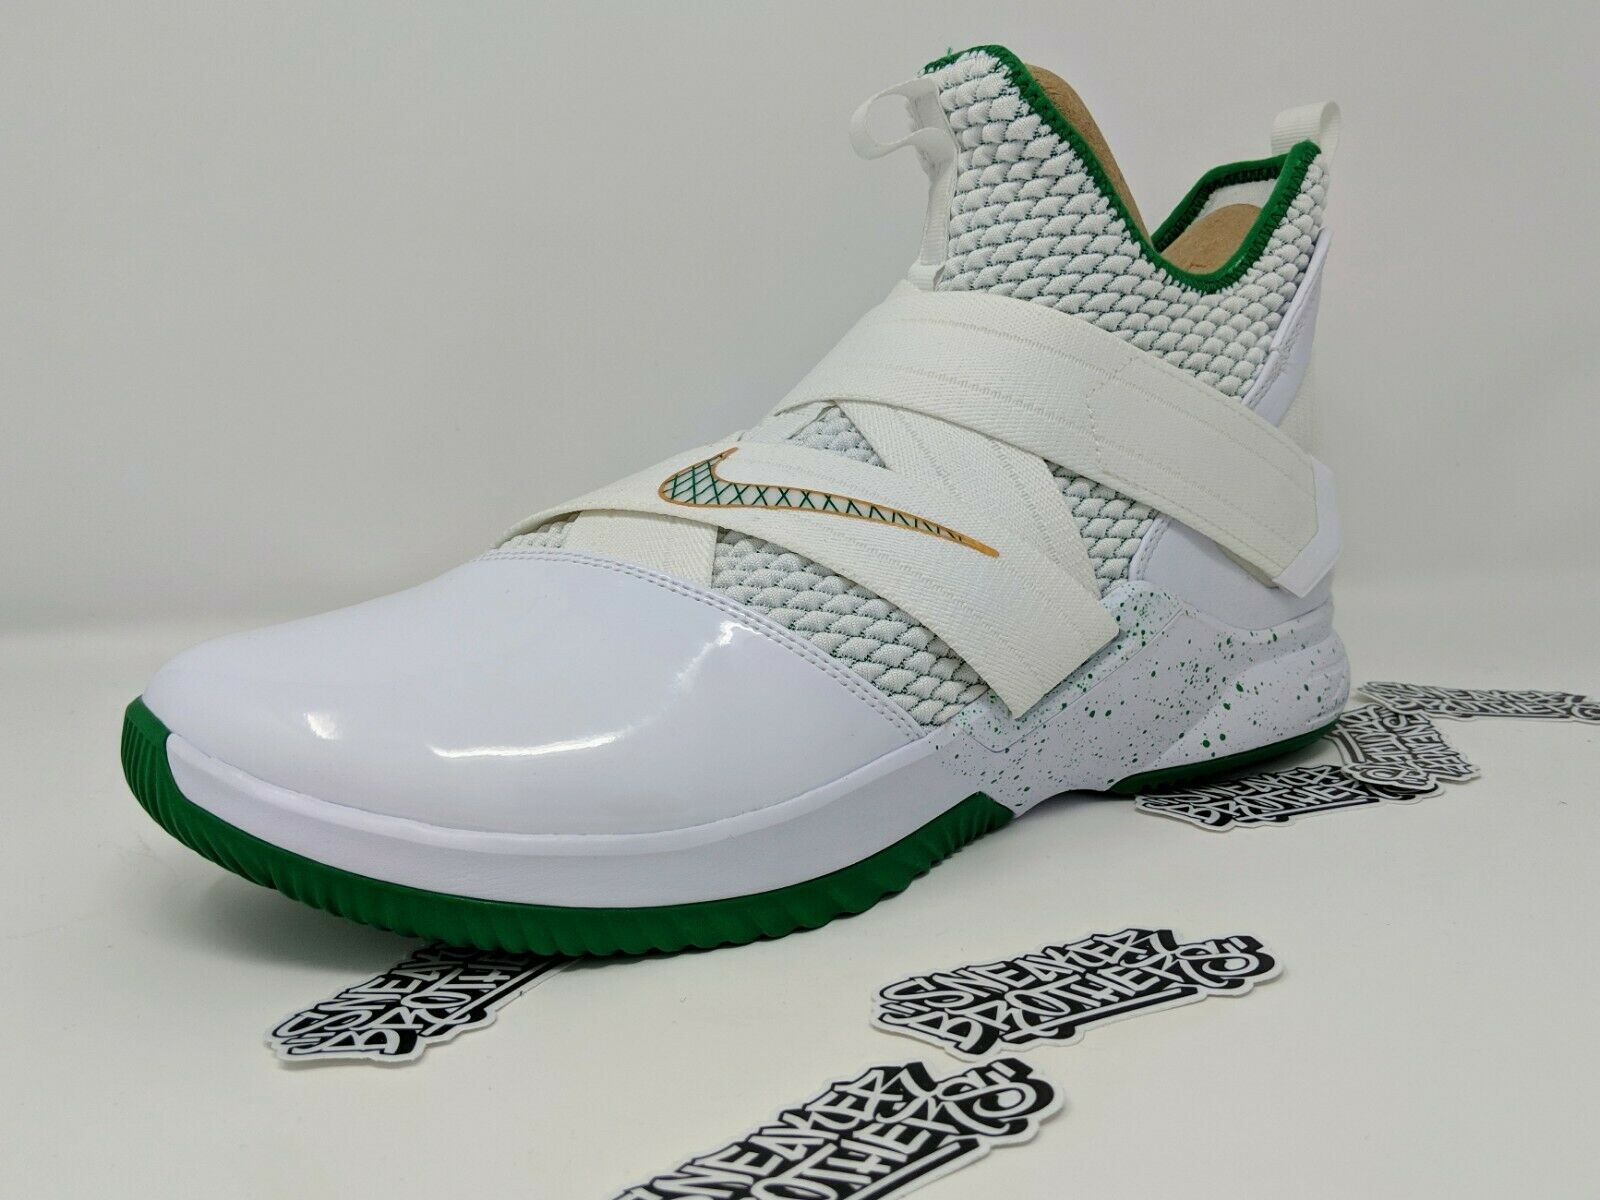 Nike LeBron Soldier XII 12 SVSM St Vincent Mary Home White Green AO2609-100